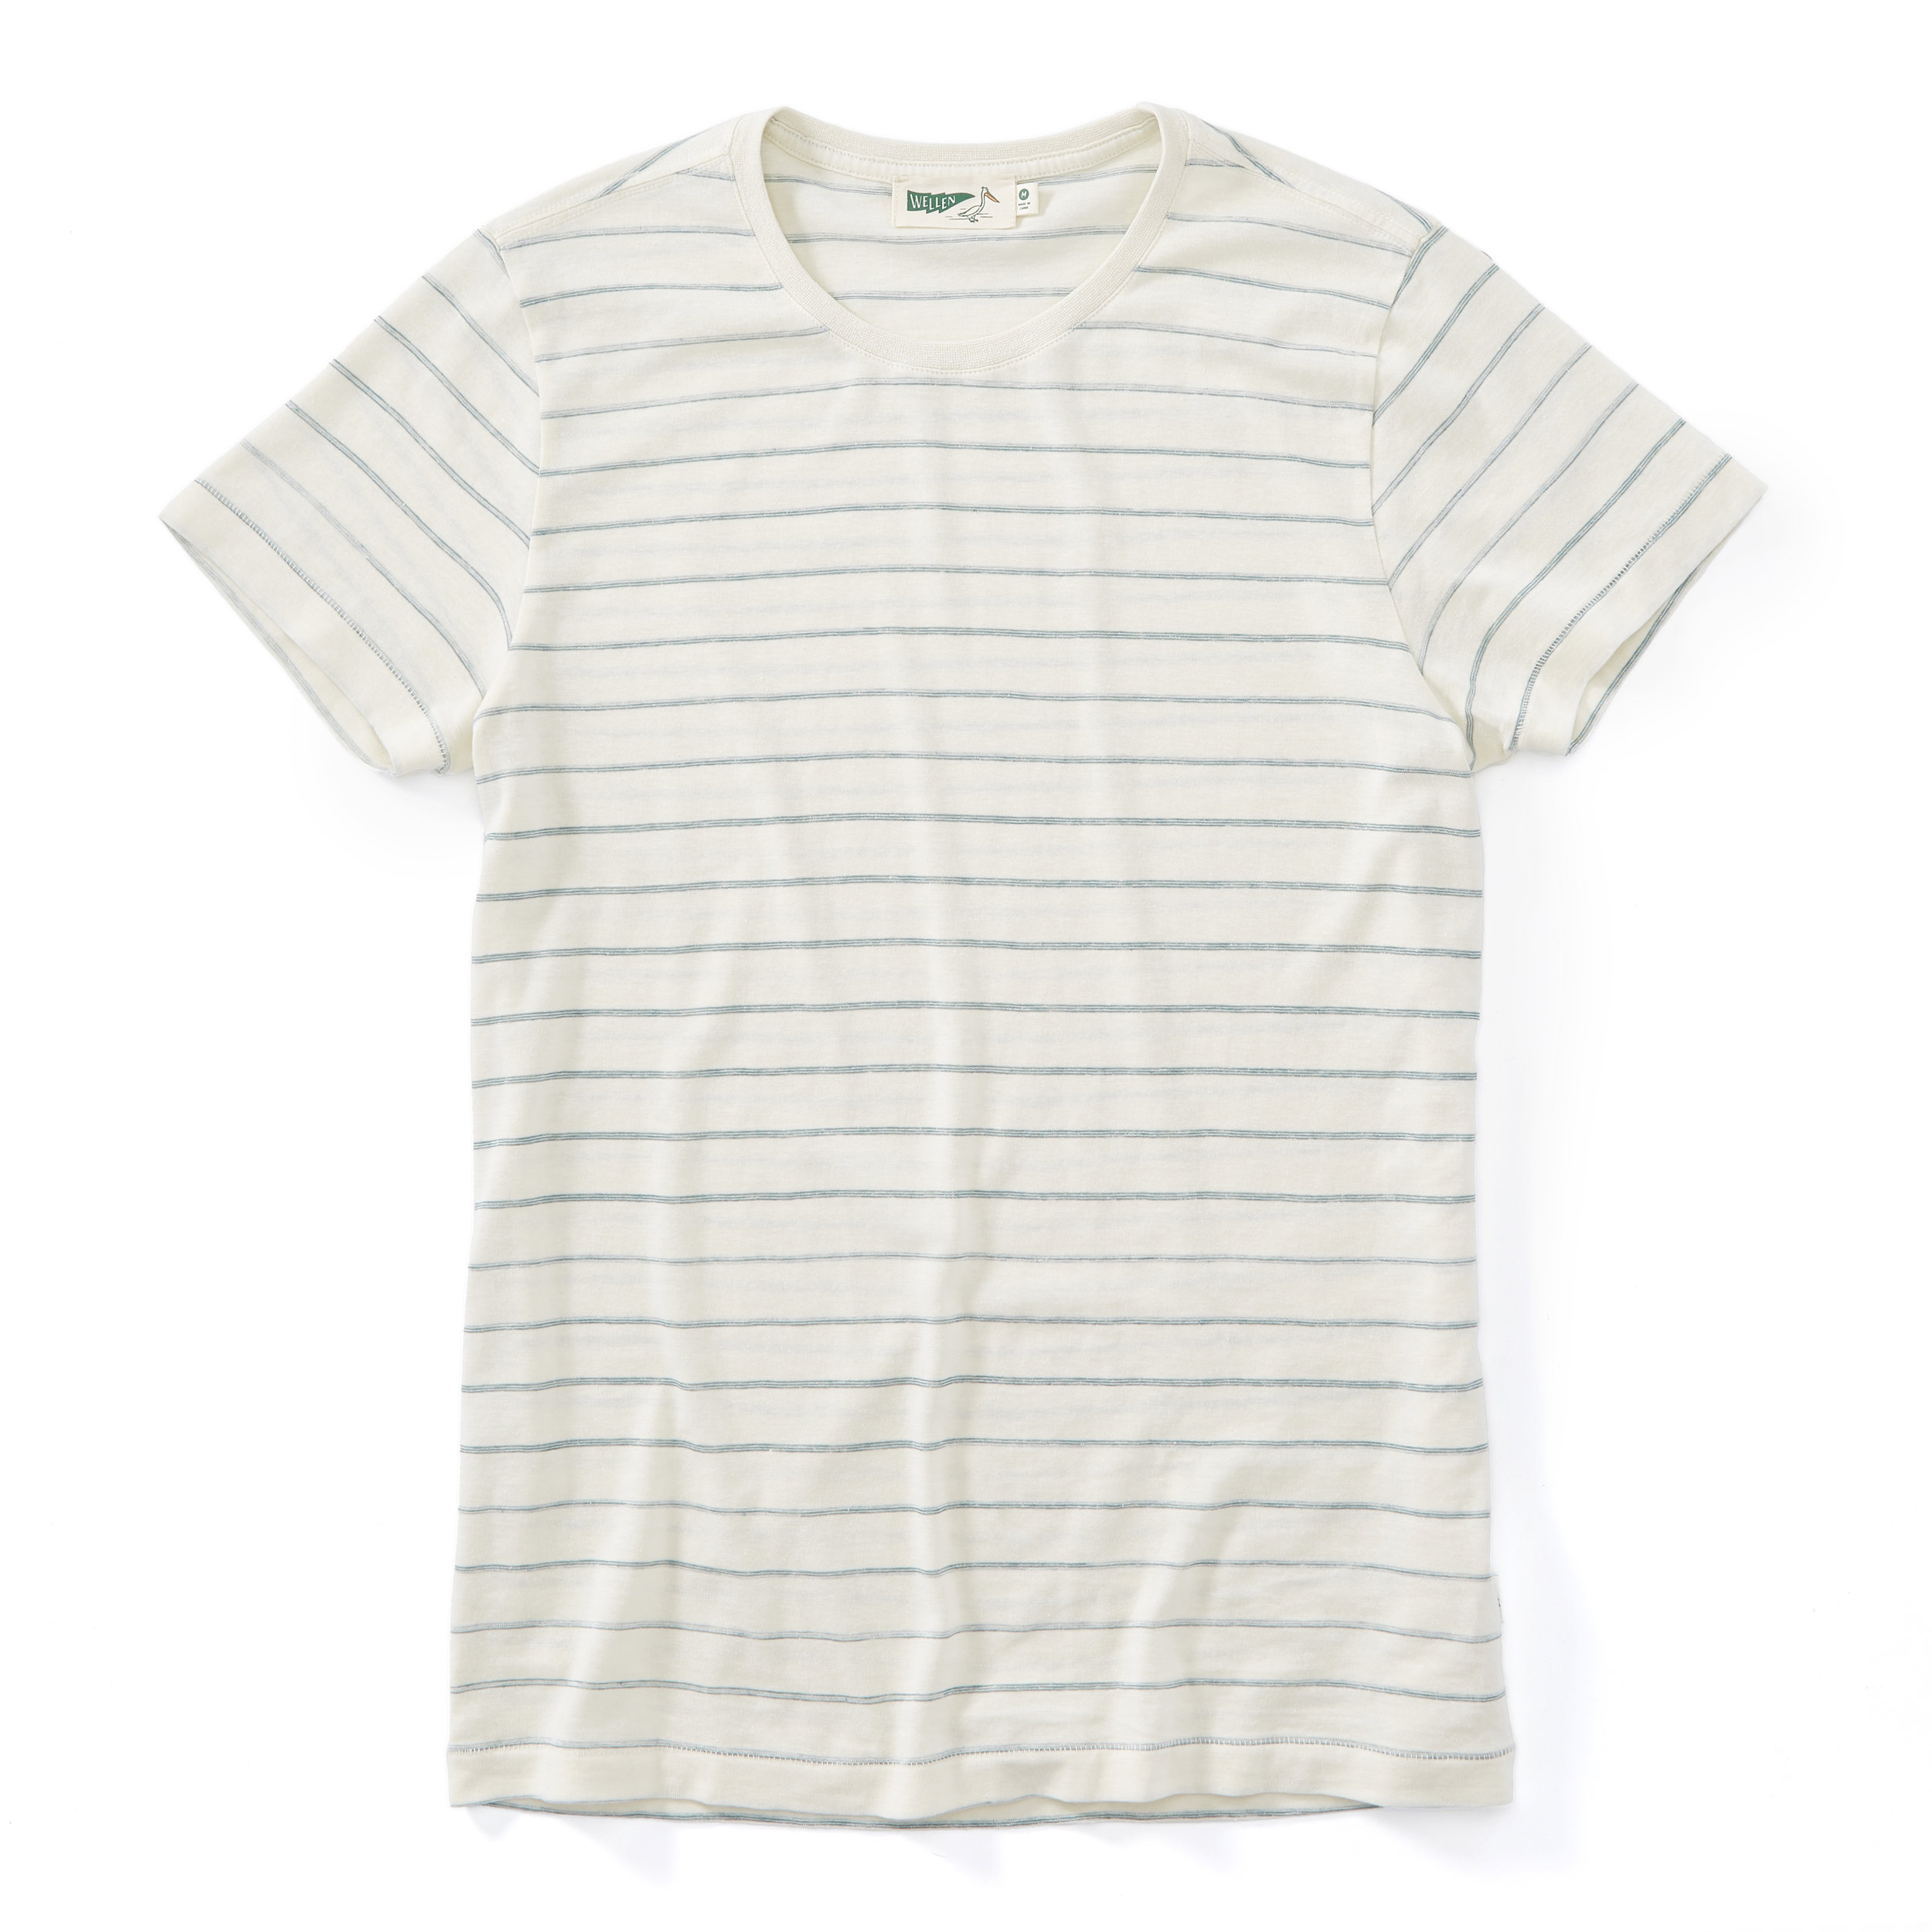 Wellen Striped Hemp Tee - This was pretty much the only tee I wore the whole time I was in Lisbon. It's super lightweight and breathable, plus the hemp held up to the wear and tear of hauling my backpack around.